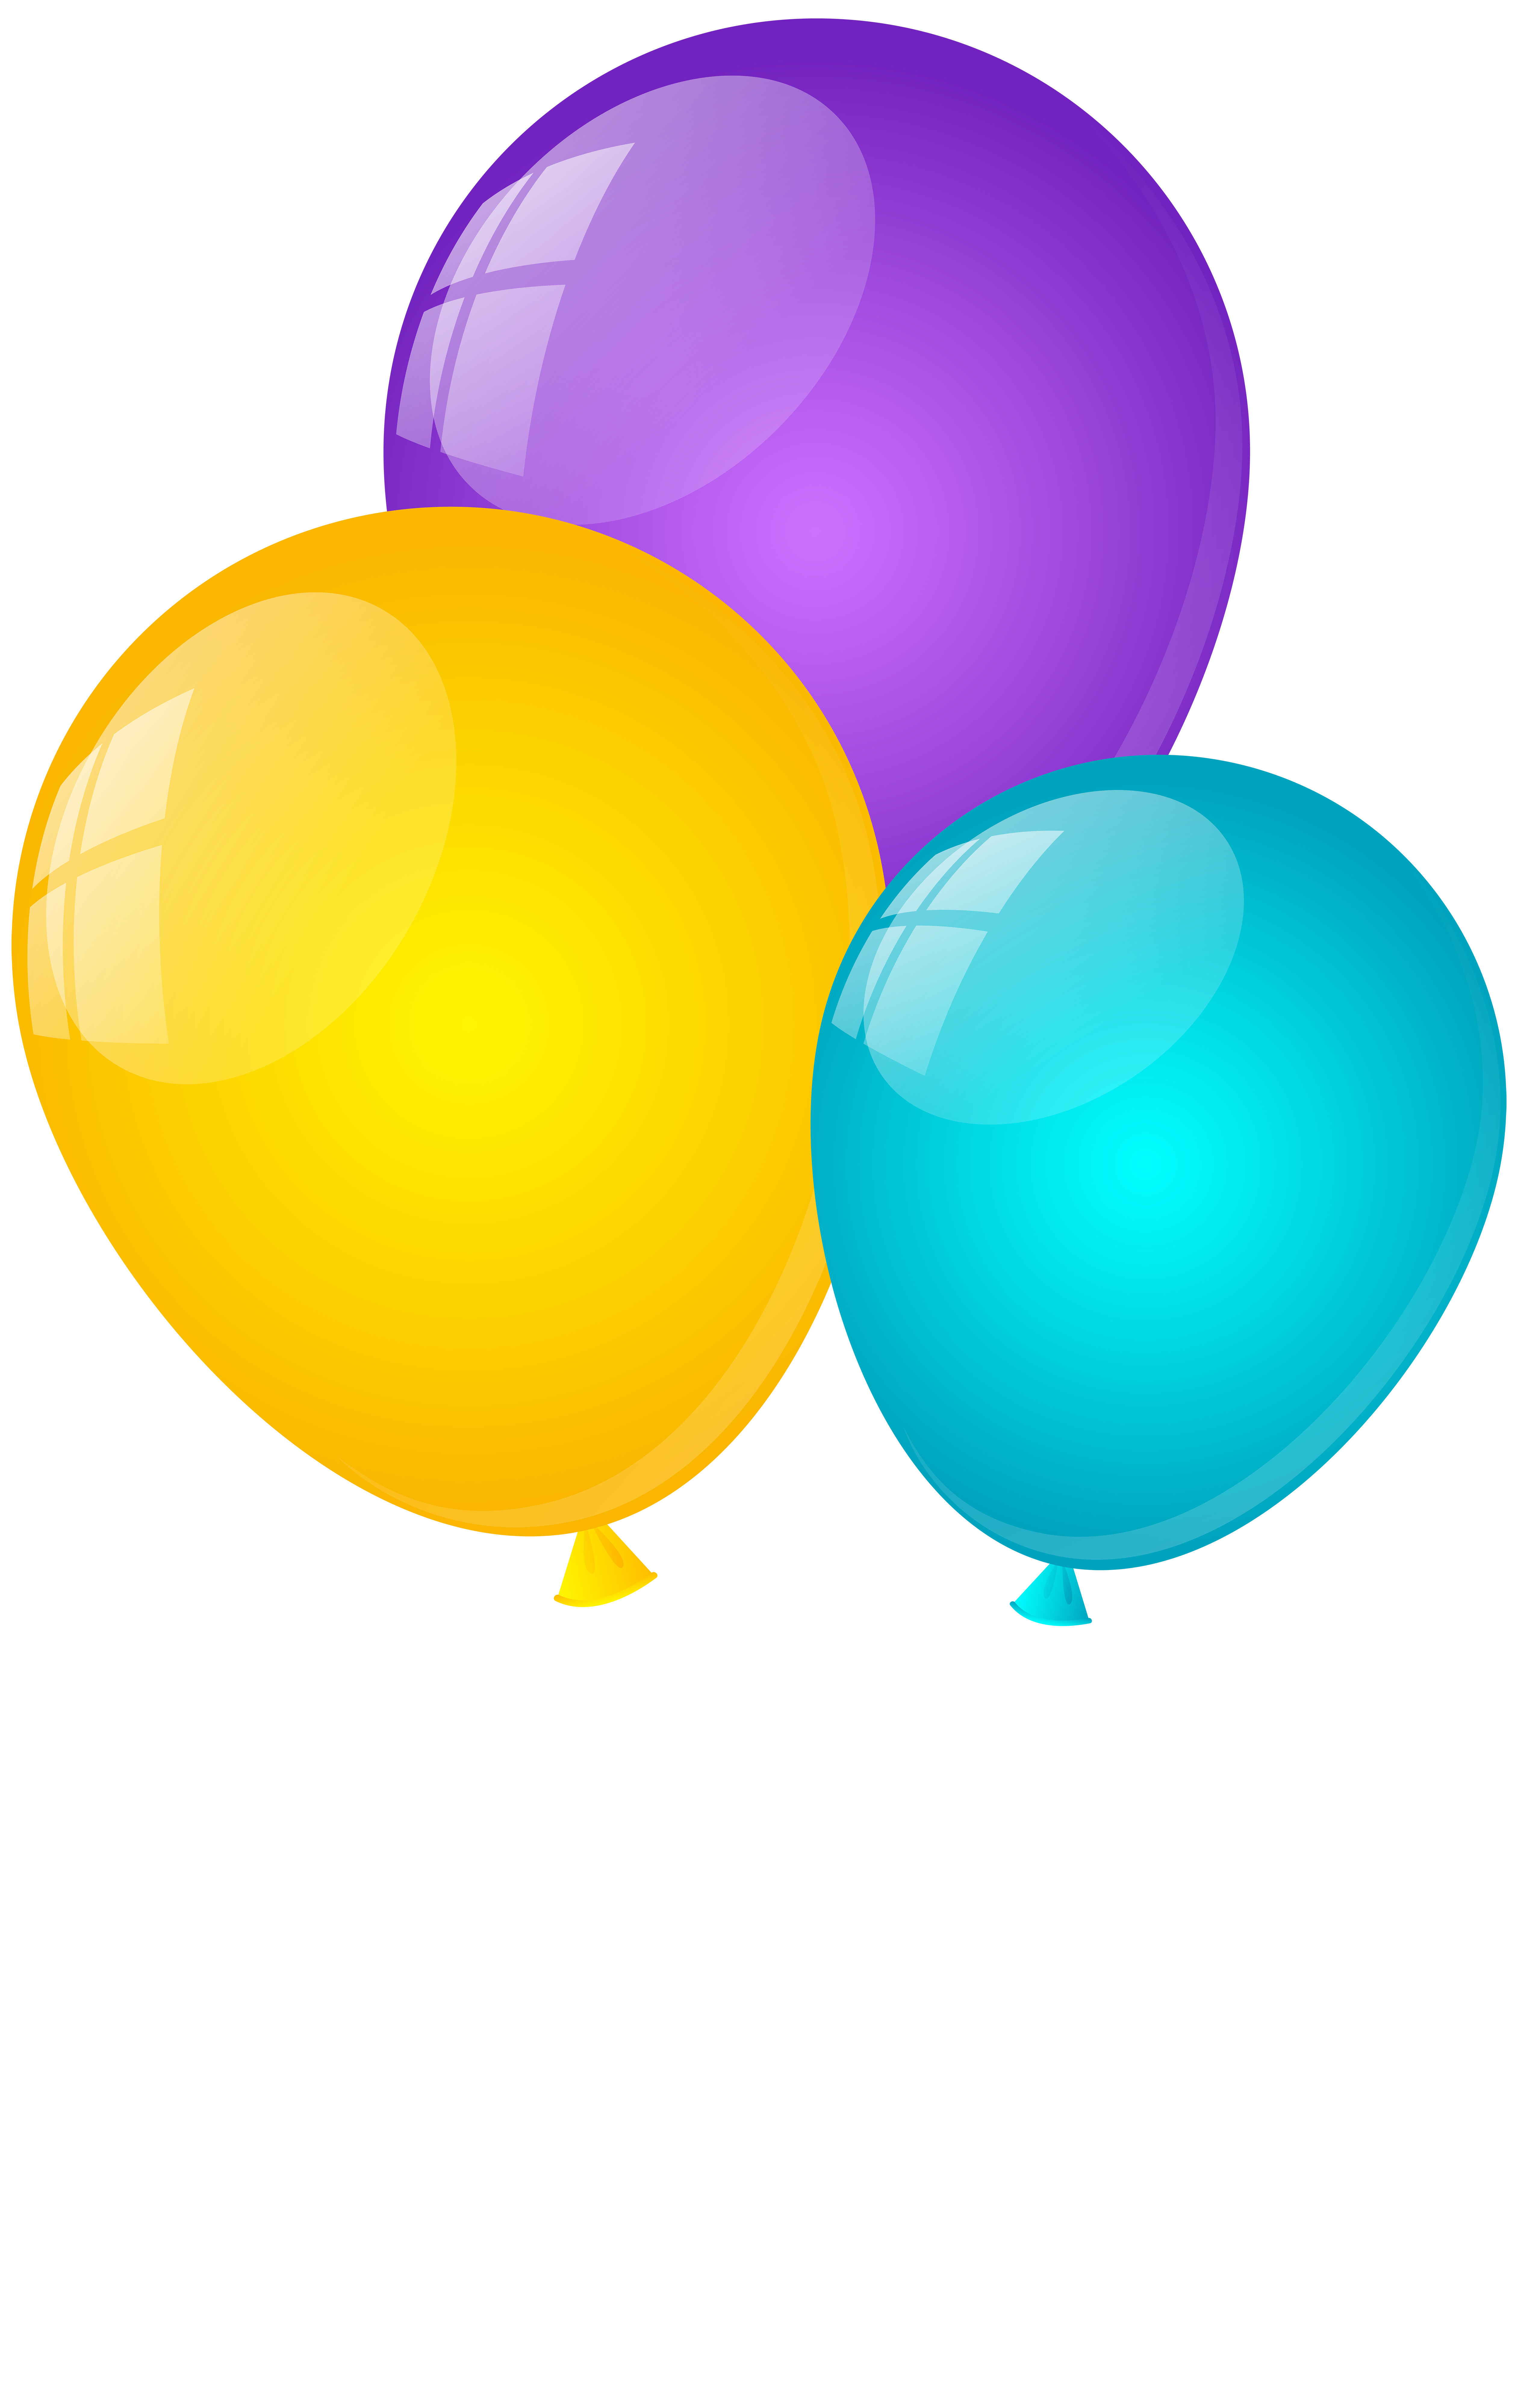 Clipart balloon turquoise. Balloons png clip art